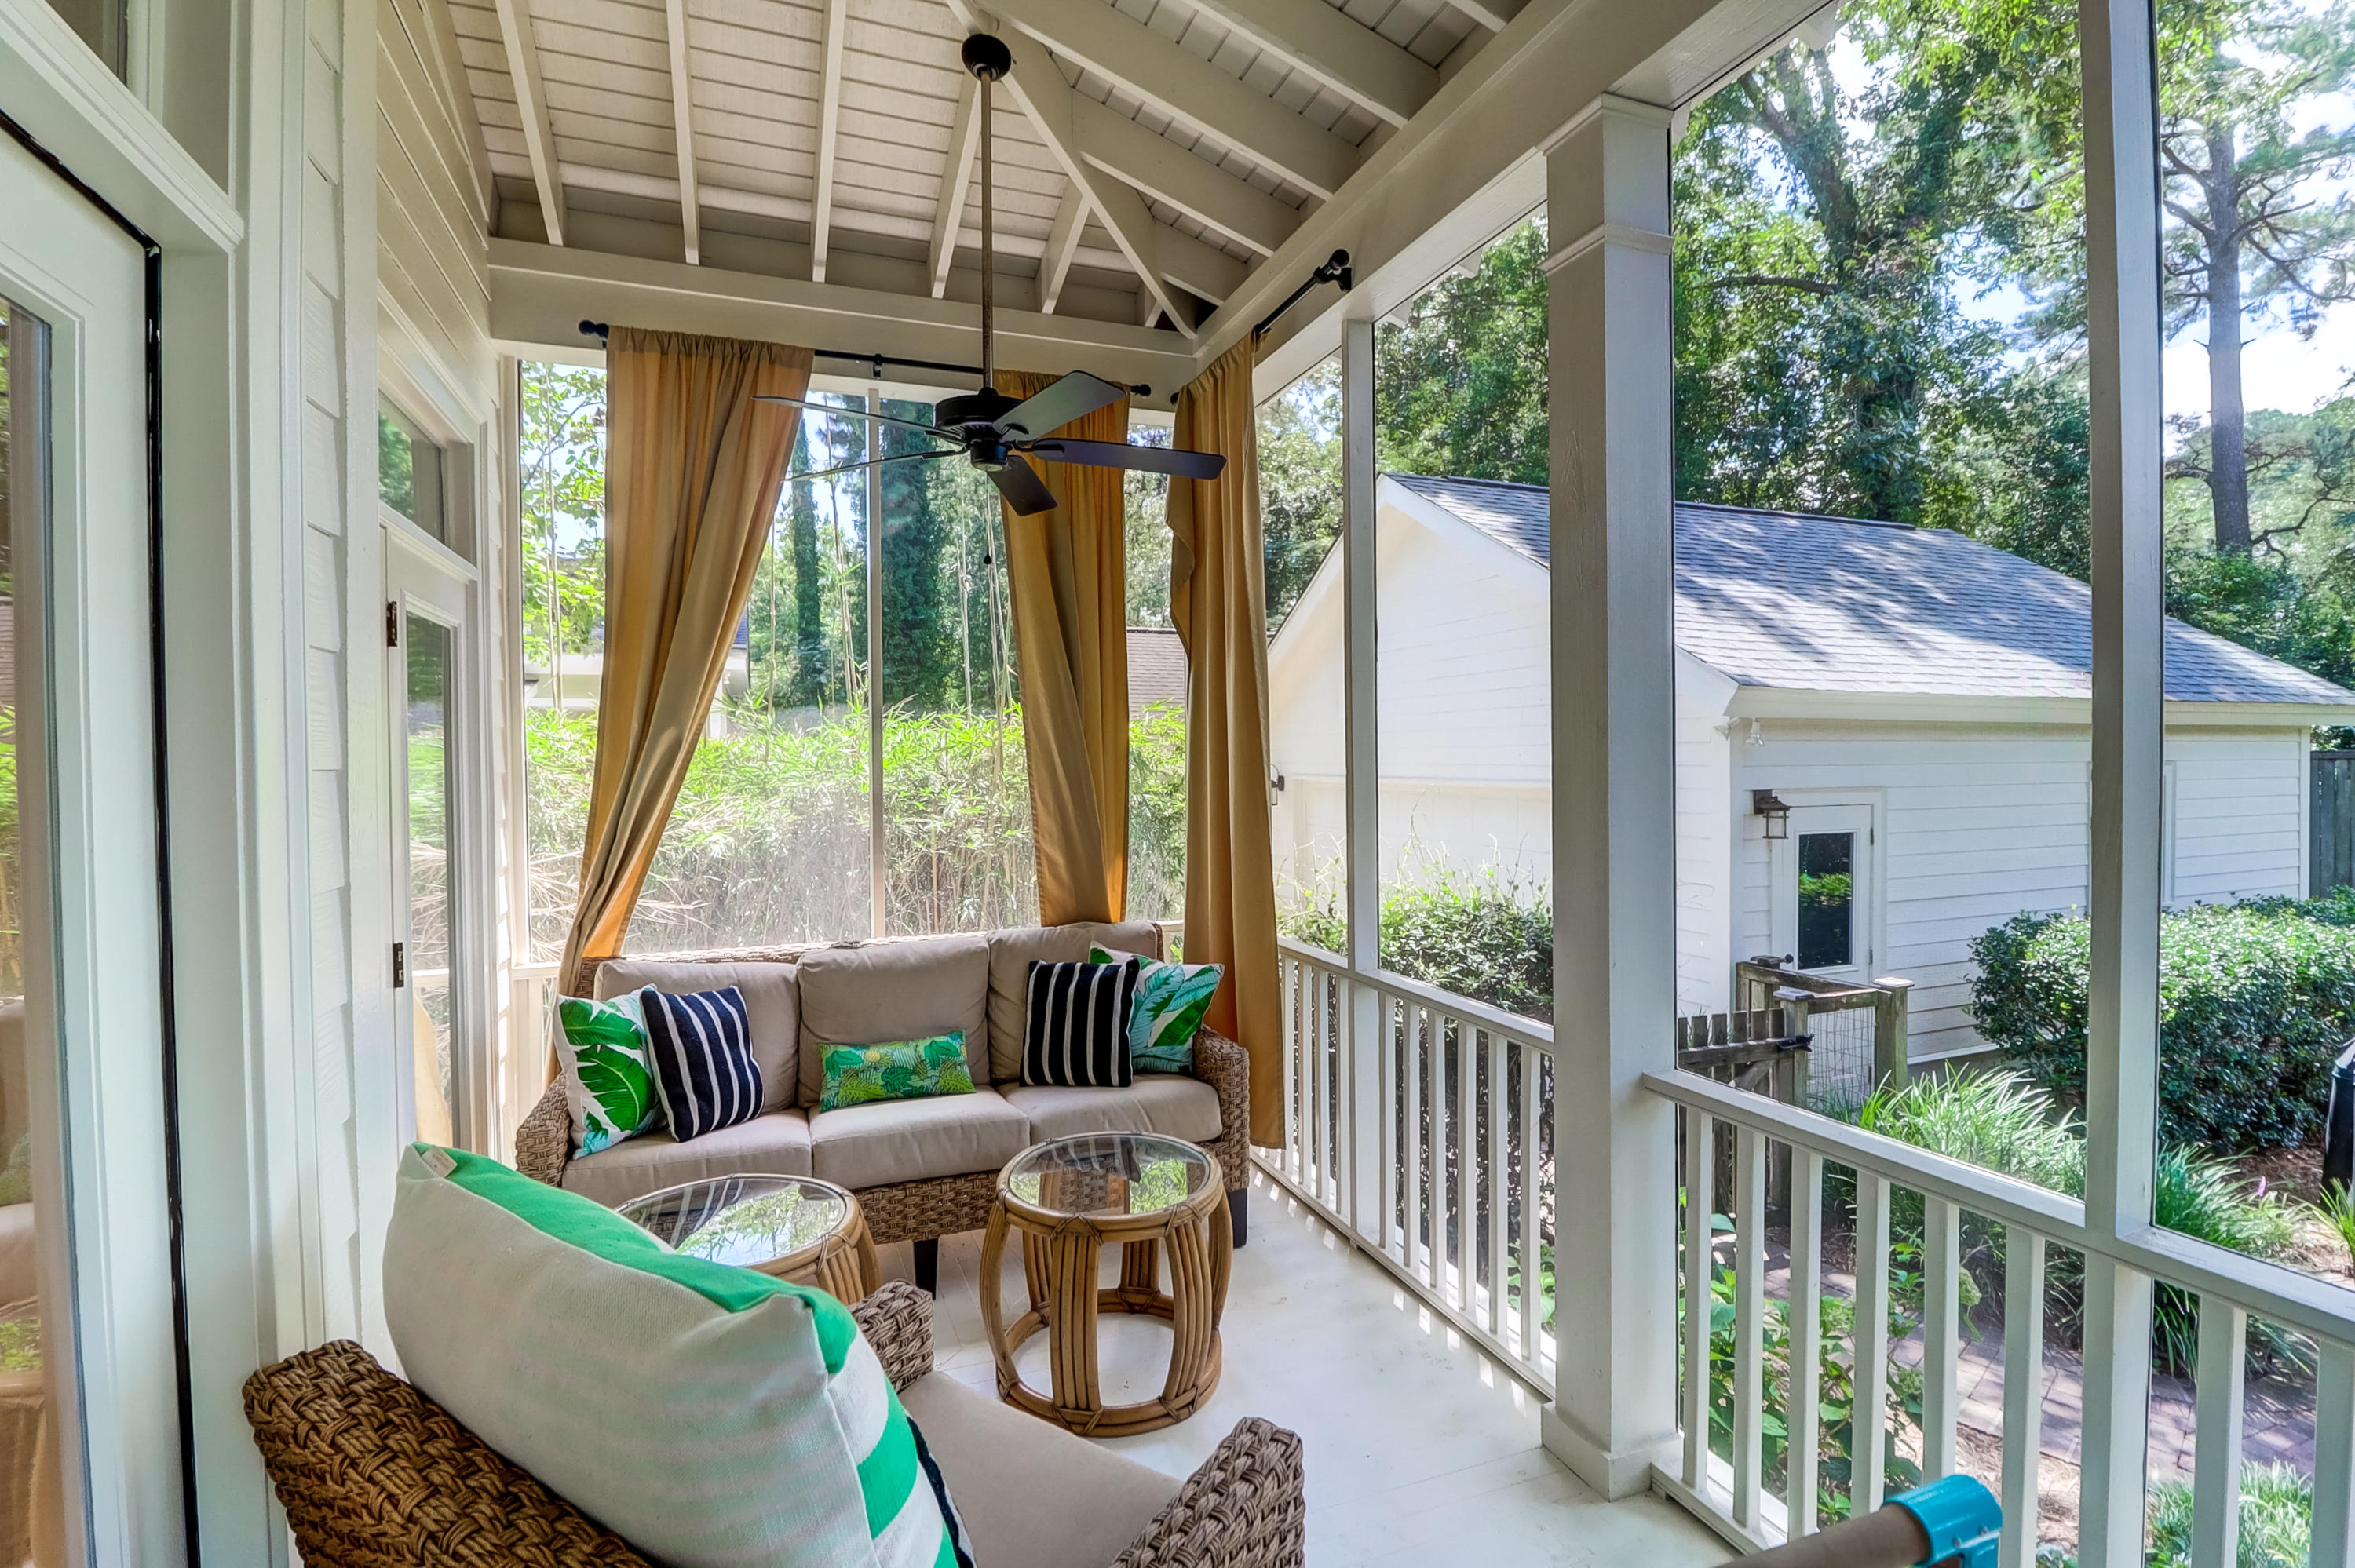 The Villages In St Johns Woods Homes For Sale - 5056 Coral Reef Dr, Johns Island, SC - 54